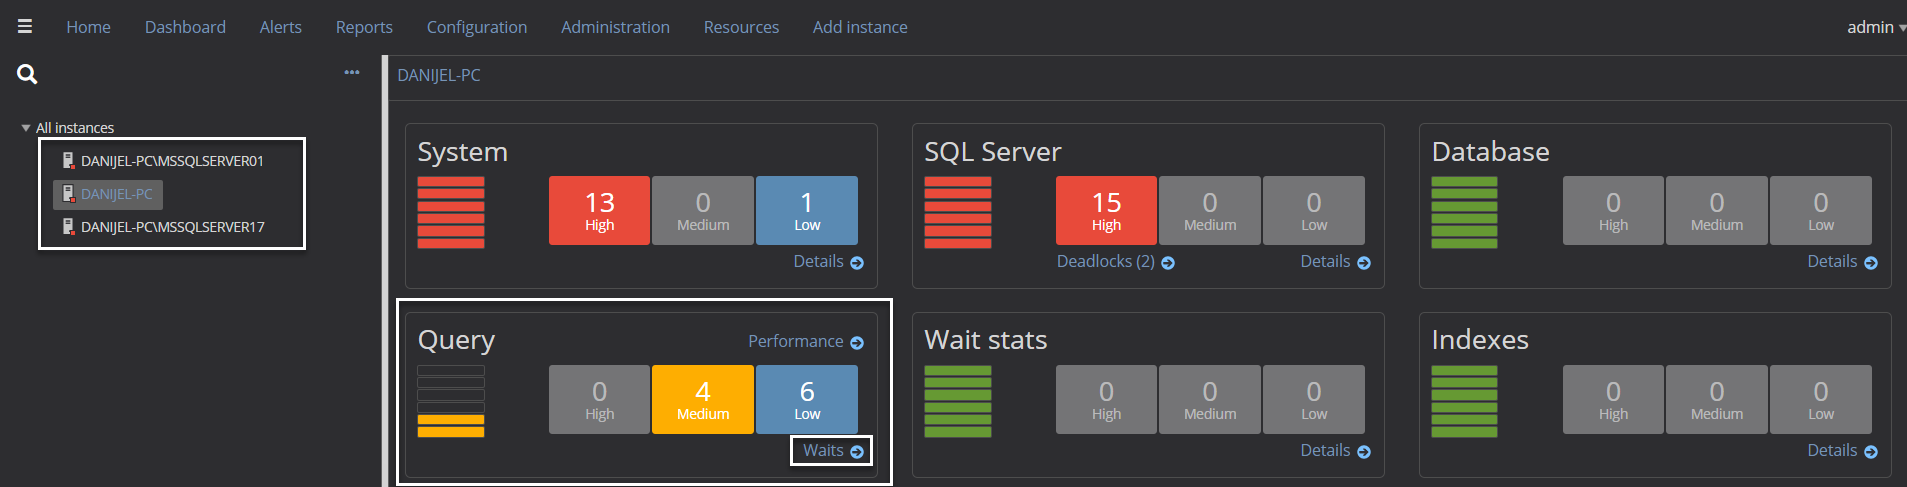 How to investigate SQL Server performance issues caused by